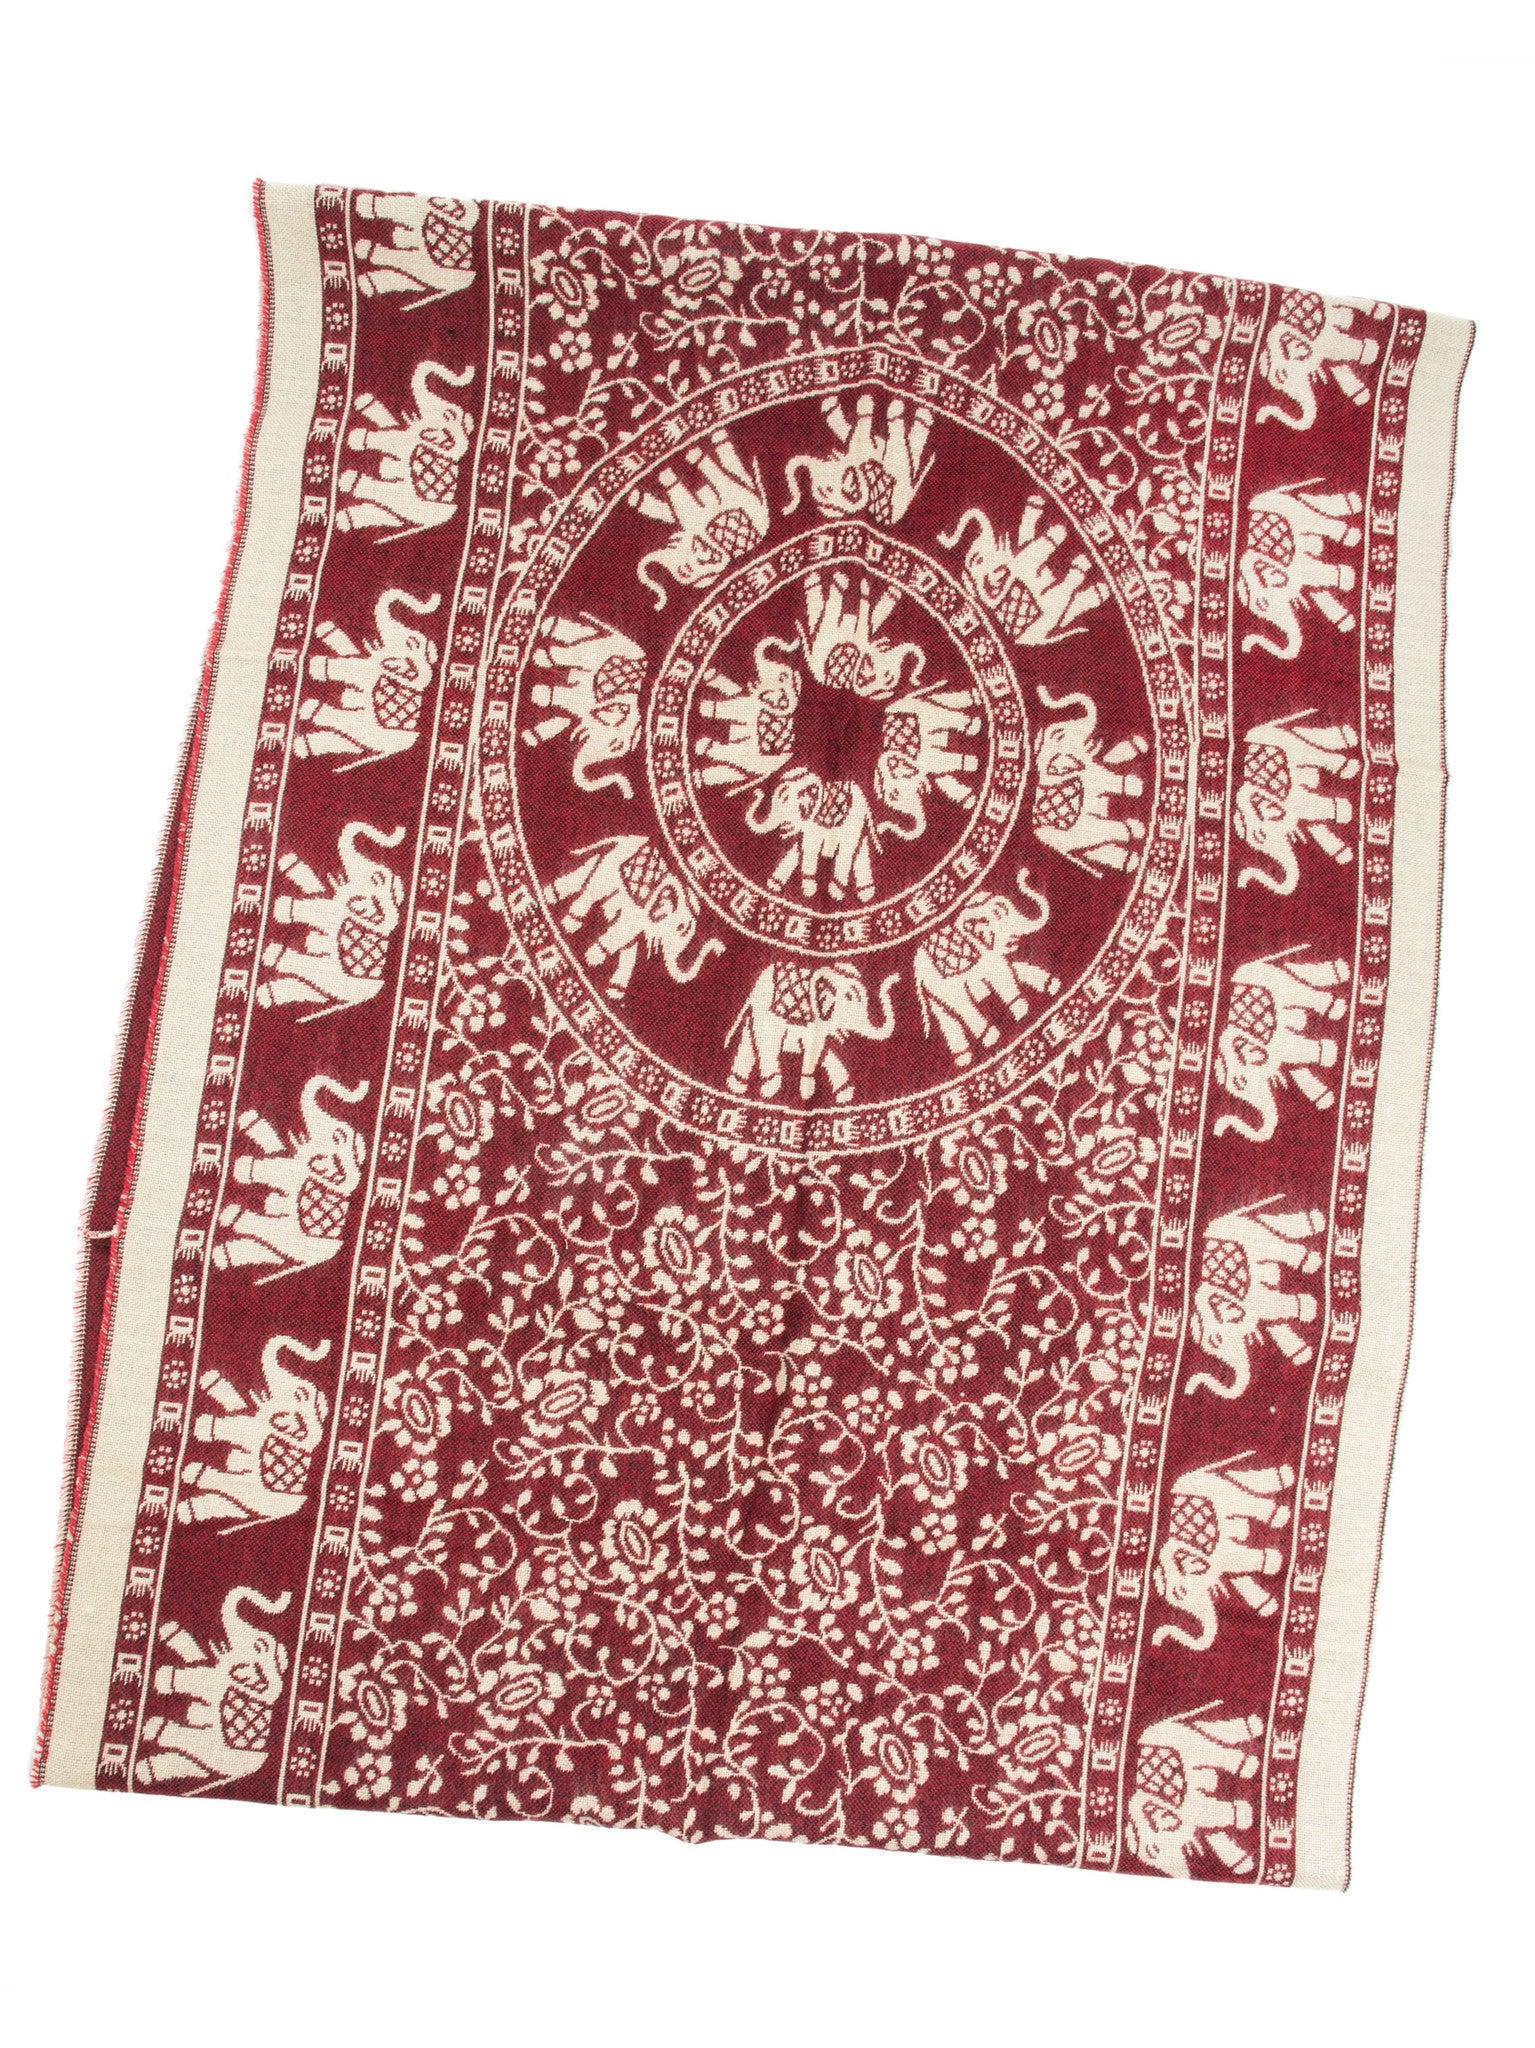 Scarves - Hathi Winter Infinity Scarf, Blanket Scarf, Indian Elephant Design -() Bohomonde  - 7